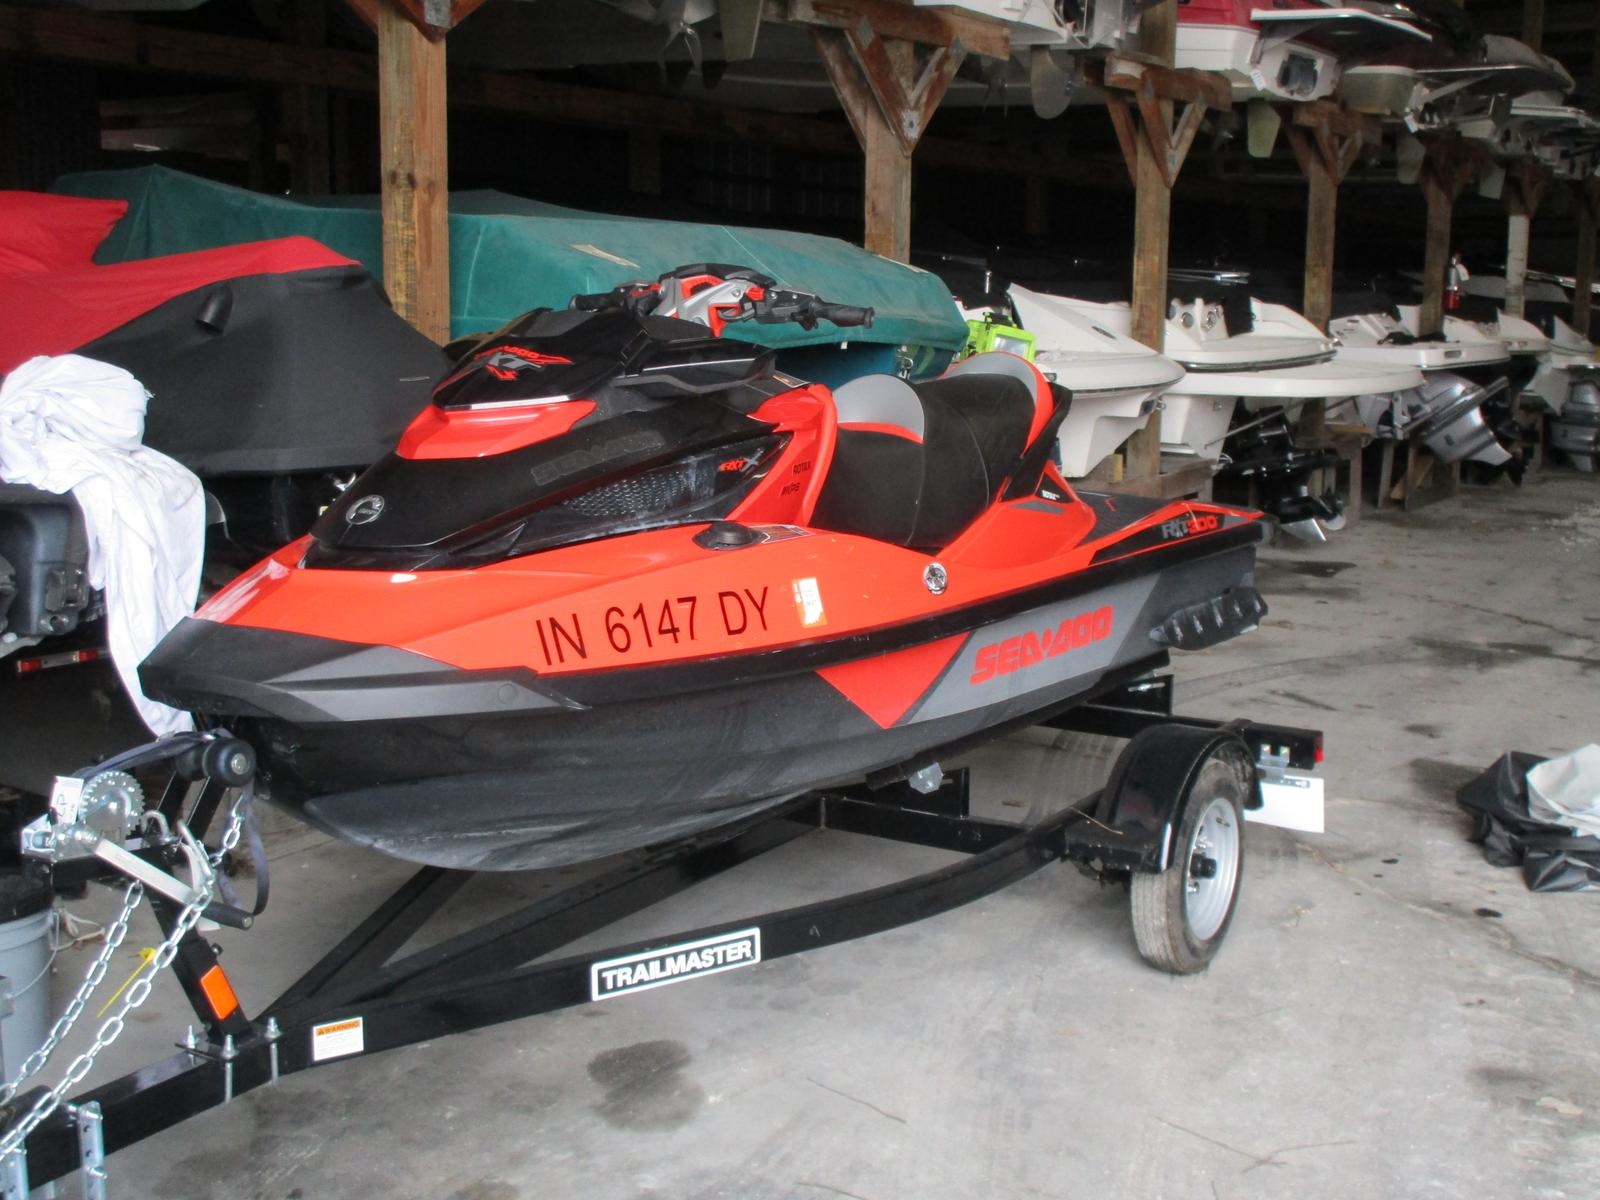 2017 Sea Doo RXT X 300 for sale in Syracuse IN